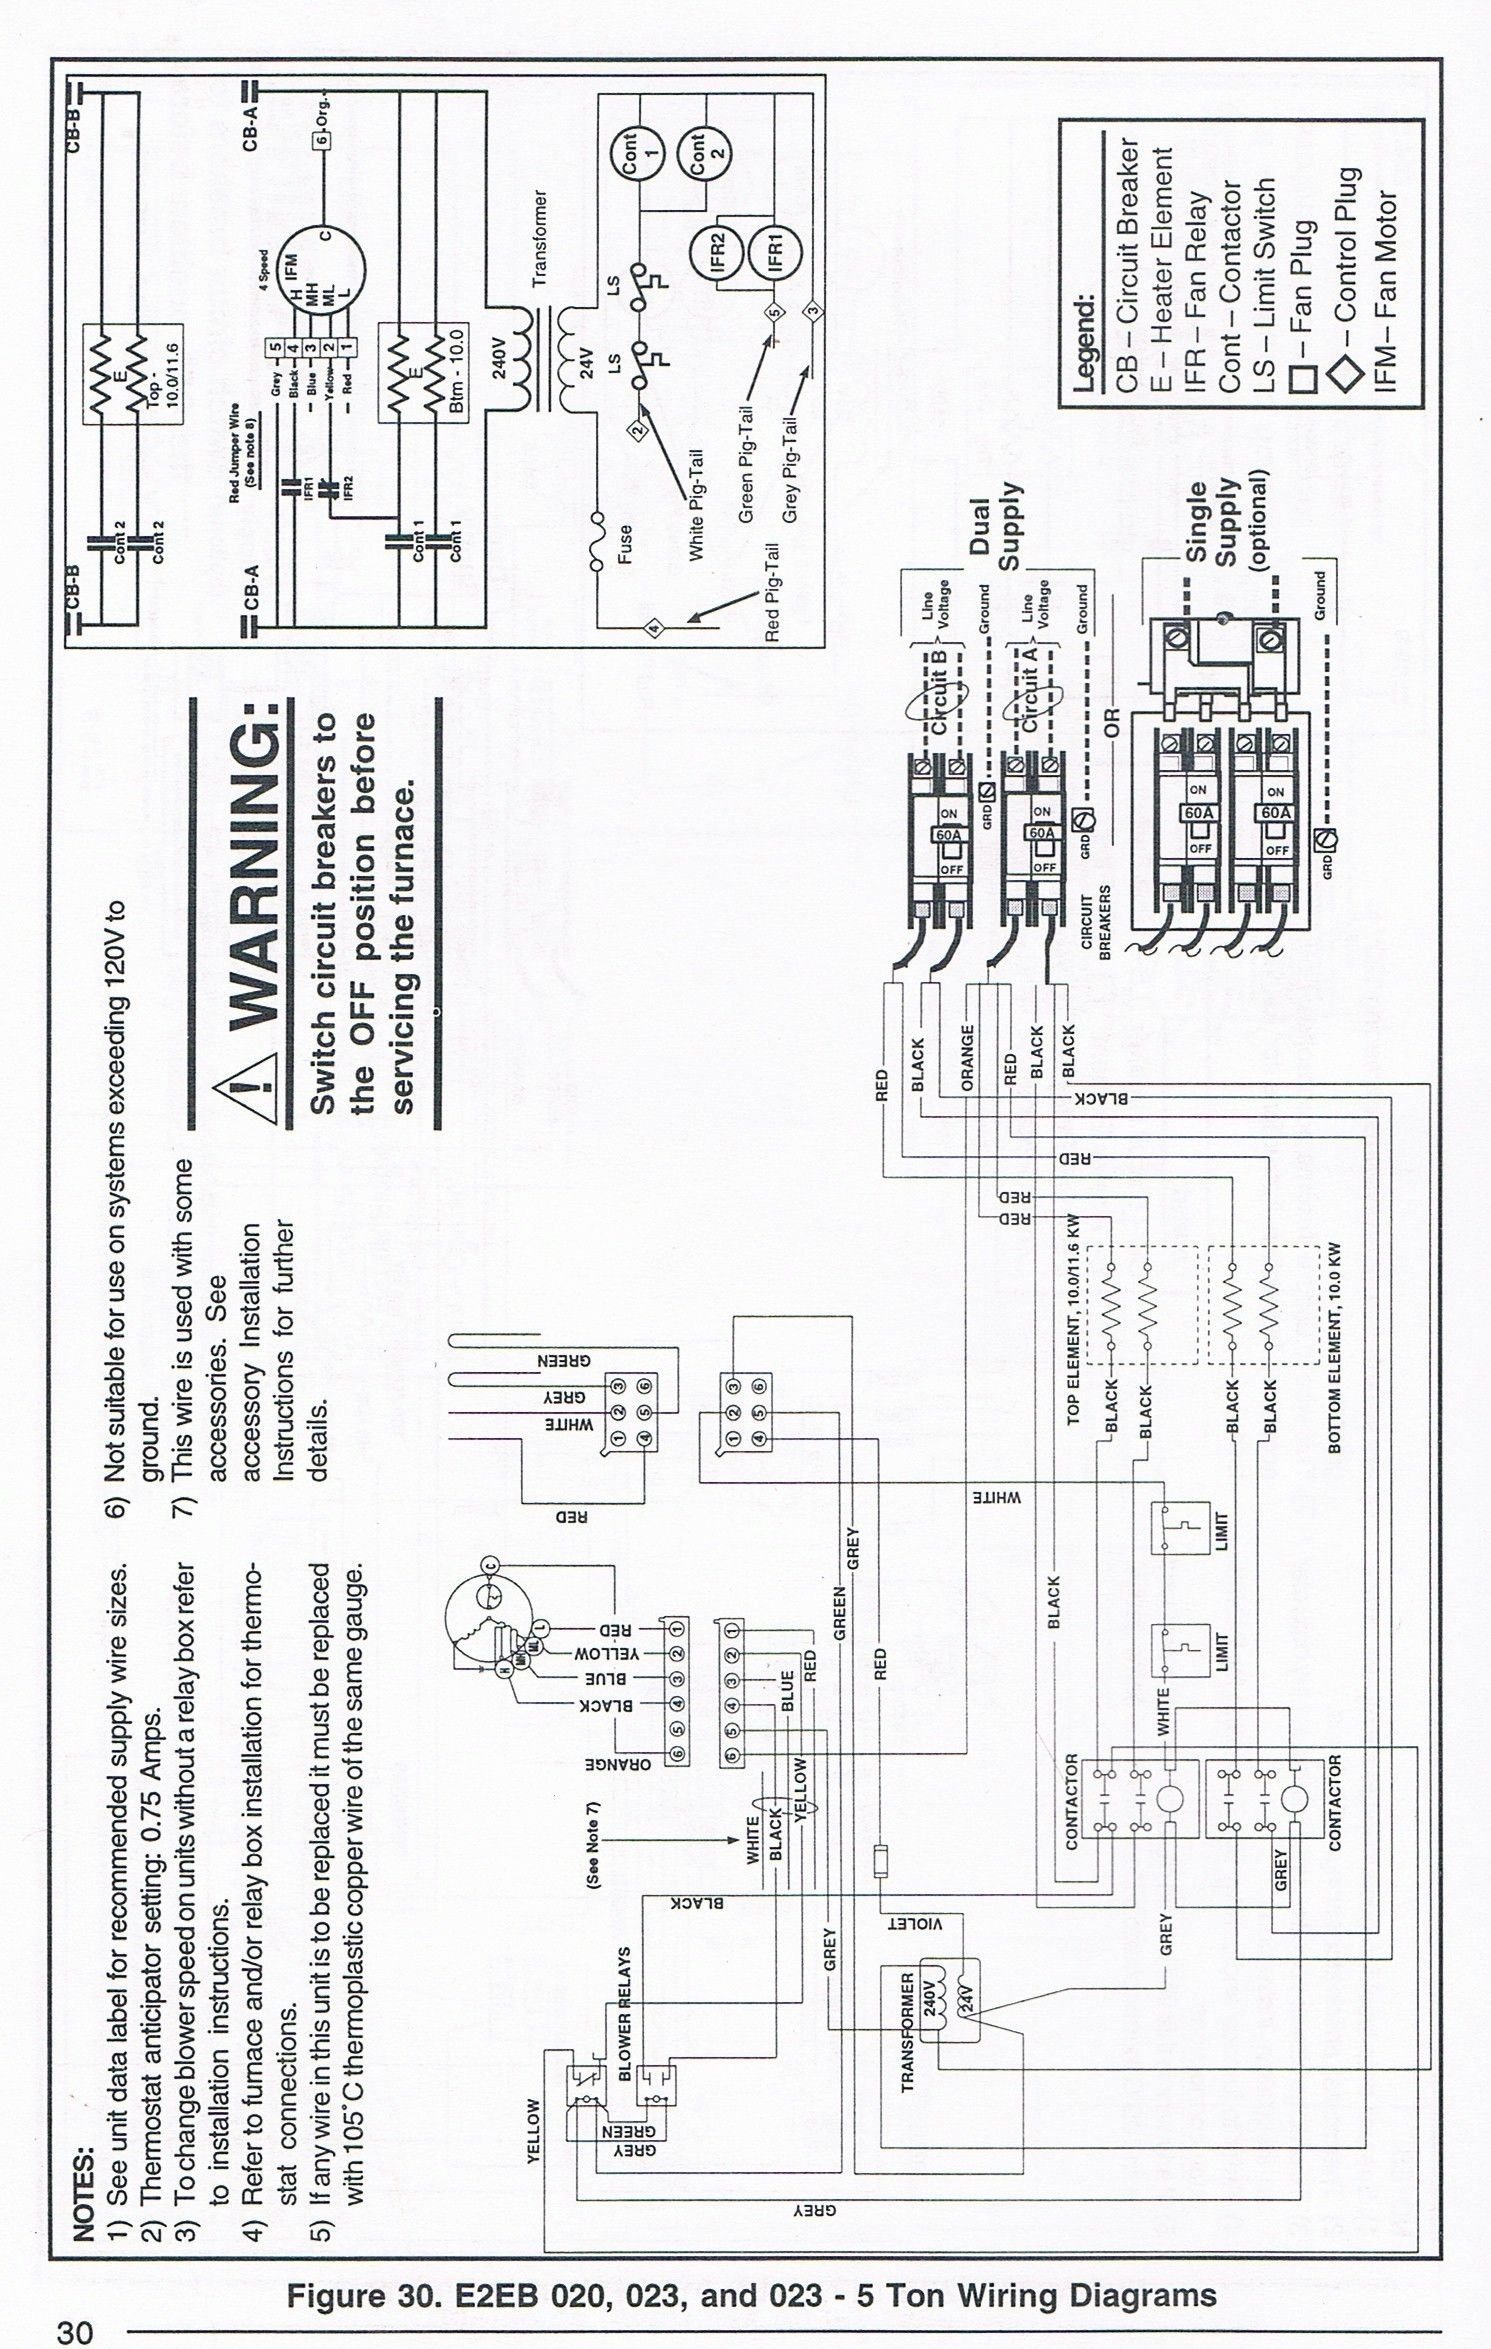 [DIAGRAM_3ER]  New Wiring Diagram for nordyne Gas Furnace #diagram #diagramsample  #diagramtemplate #wiringdiagram #diagramchart #workshee… | Electric  furnace, Gas furnace, Furnace | Nordyne Heat Pump Wiring Diagram |  | Pinterest